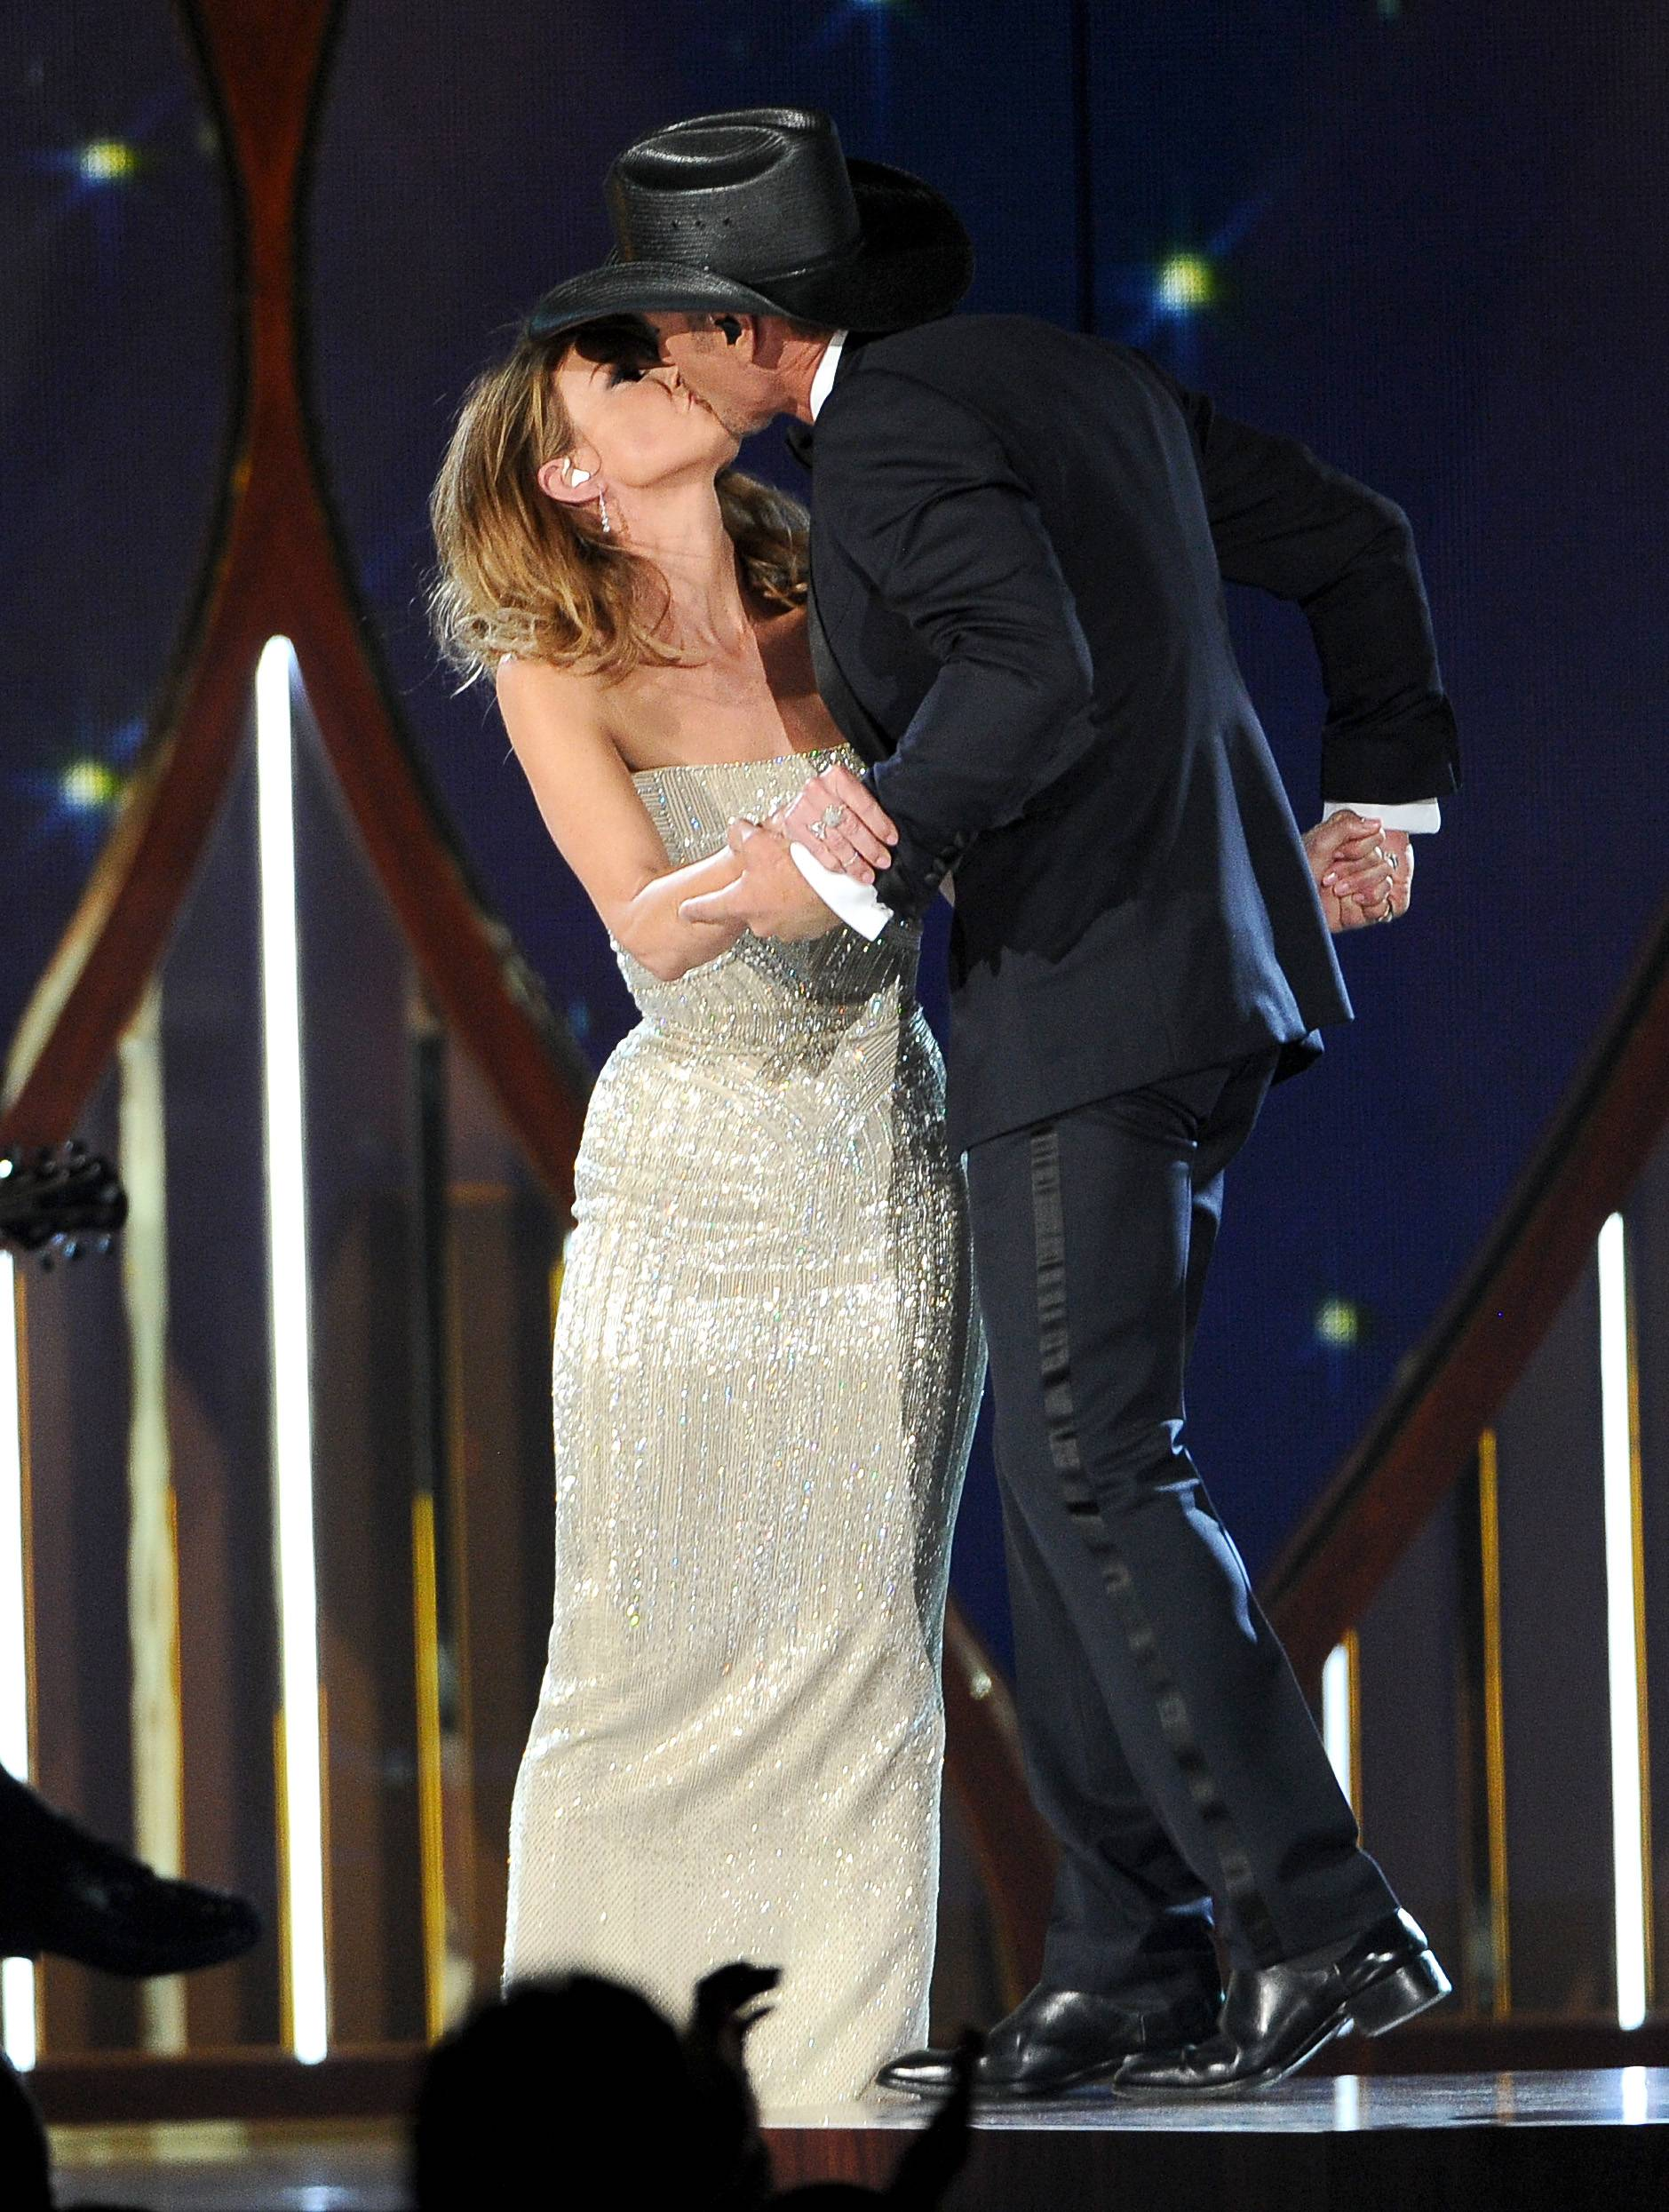 Faith Hill and Tim McGraw kiss on stage at the 49th annual Academy of Country Music Awards.